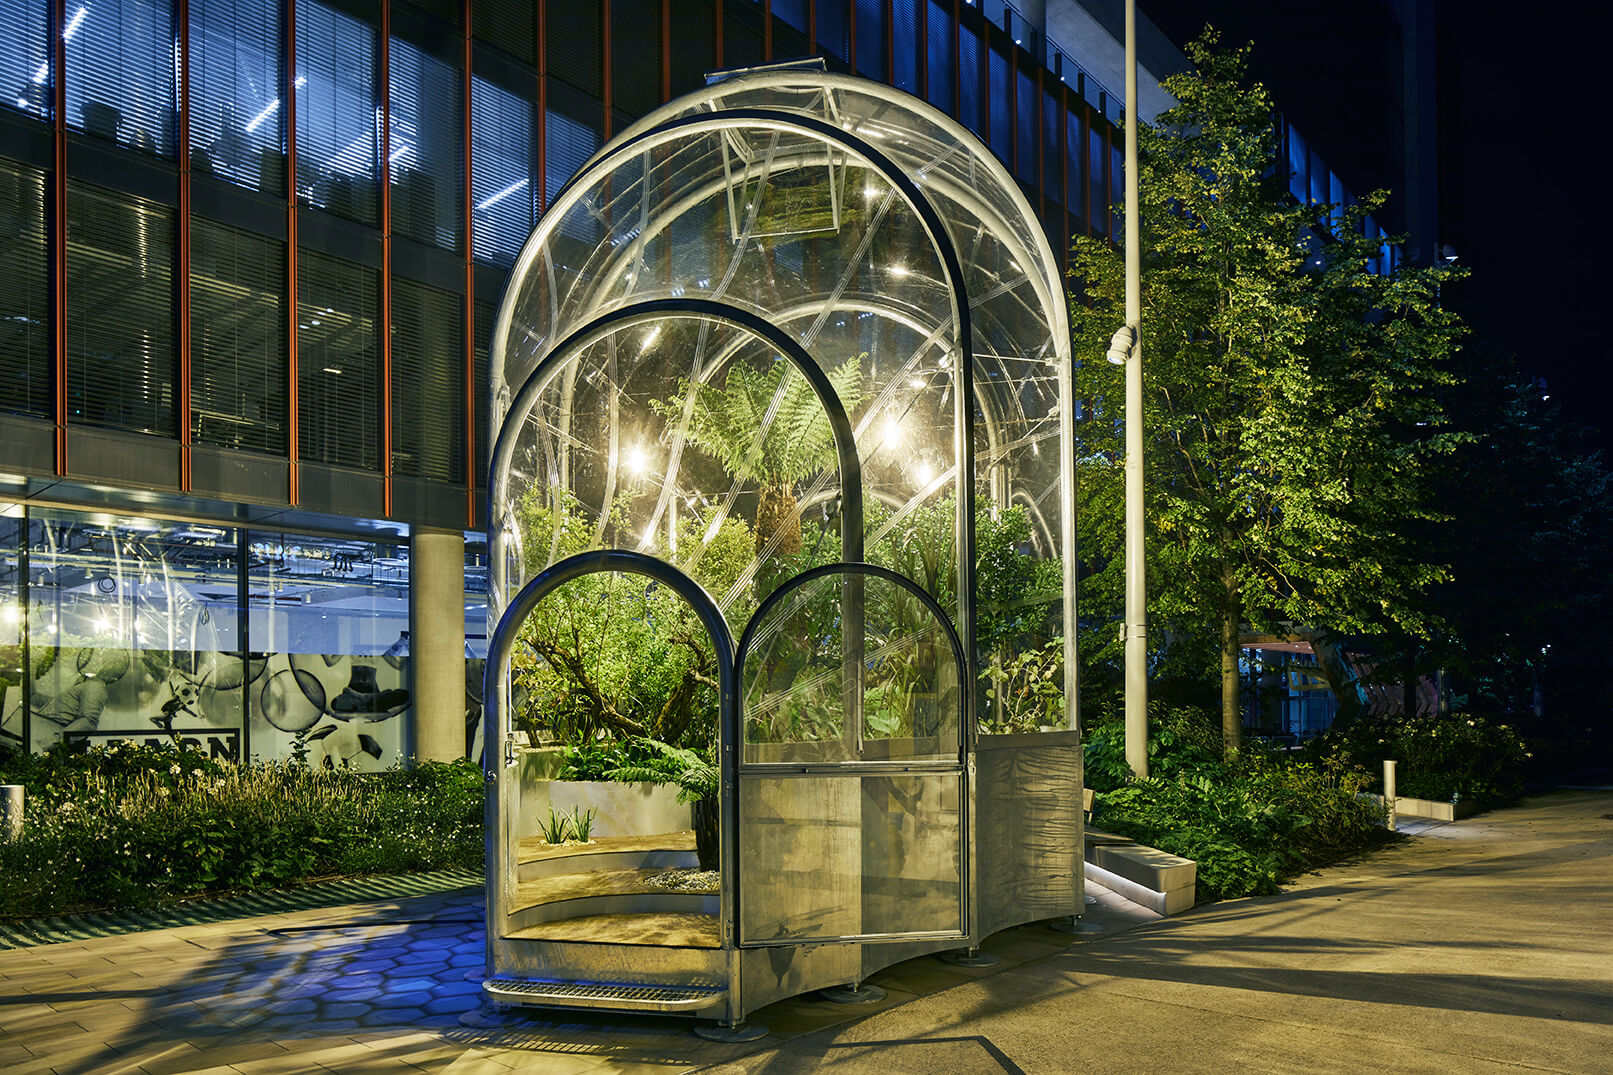 The form of the installation draws inspiration from Victorian glasshouses and England's history of collecting exotic plants from their colonies | The Hothouse, Studio Weave at London Design Festival  | STIRworld